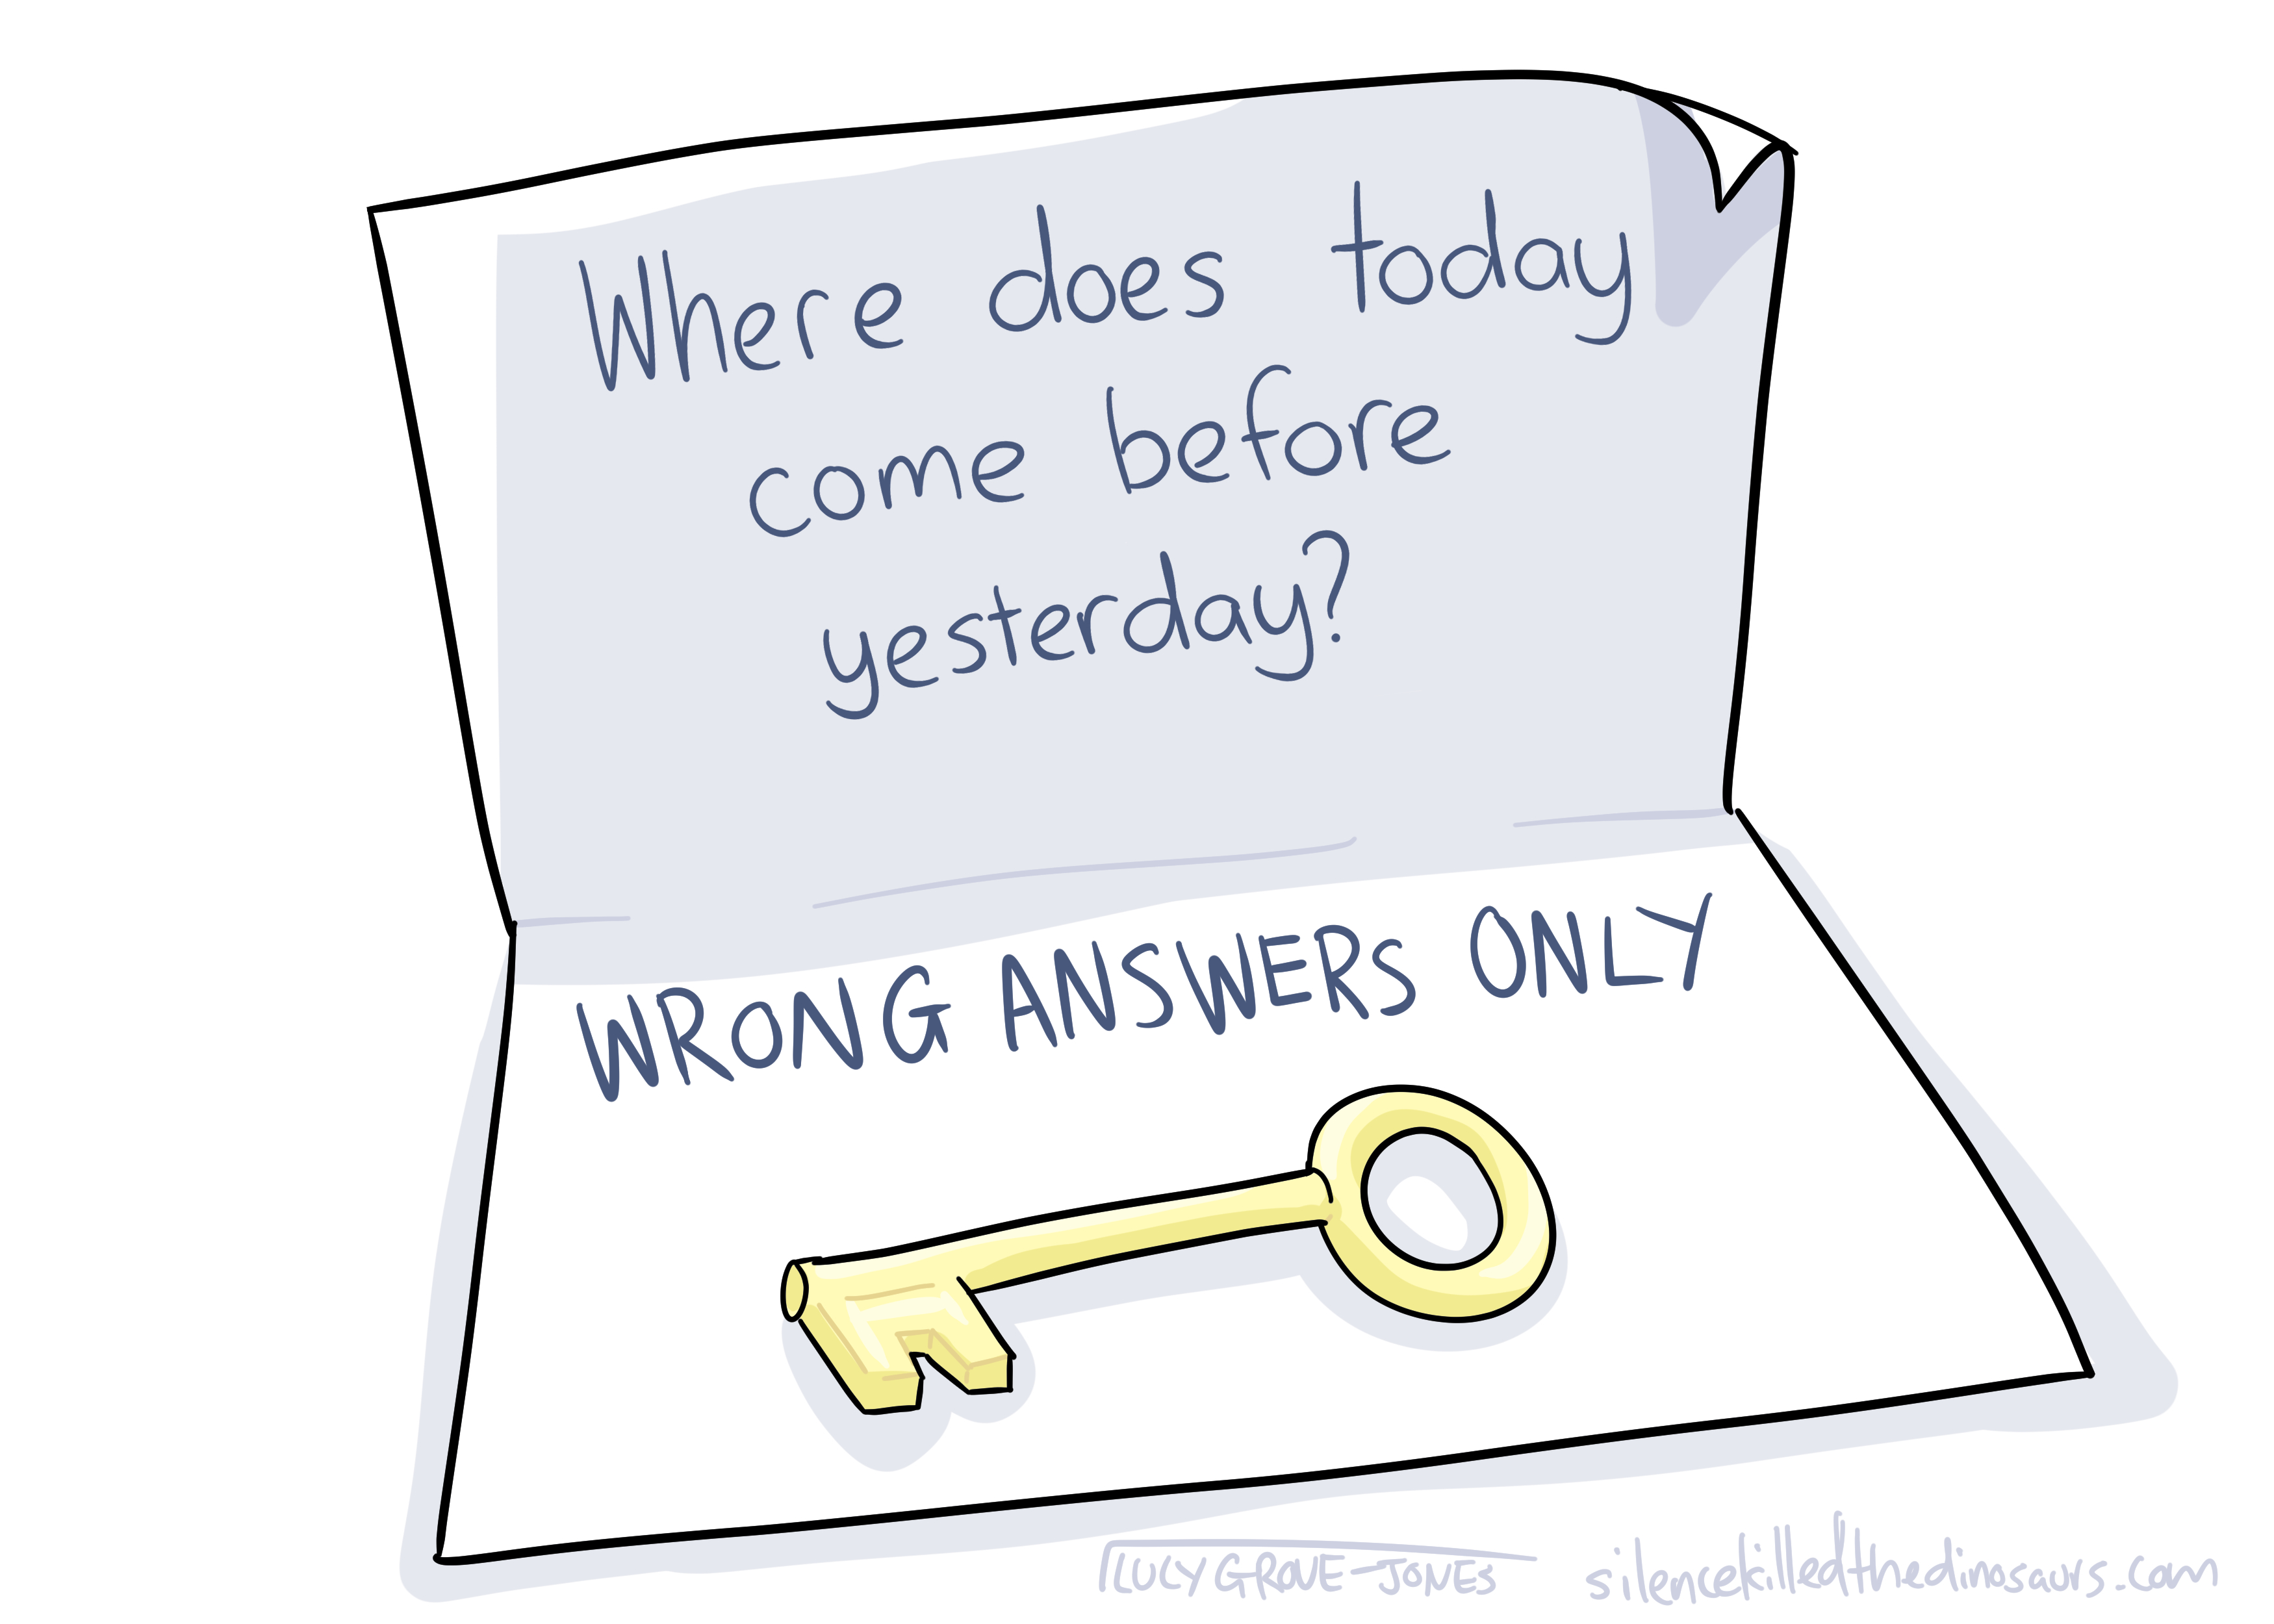 A note with a key. The note reads: Where does today come before yesterday? WRONG ANSWERS ONLY'